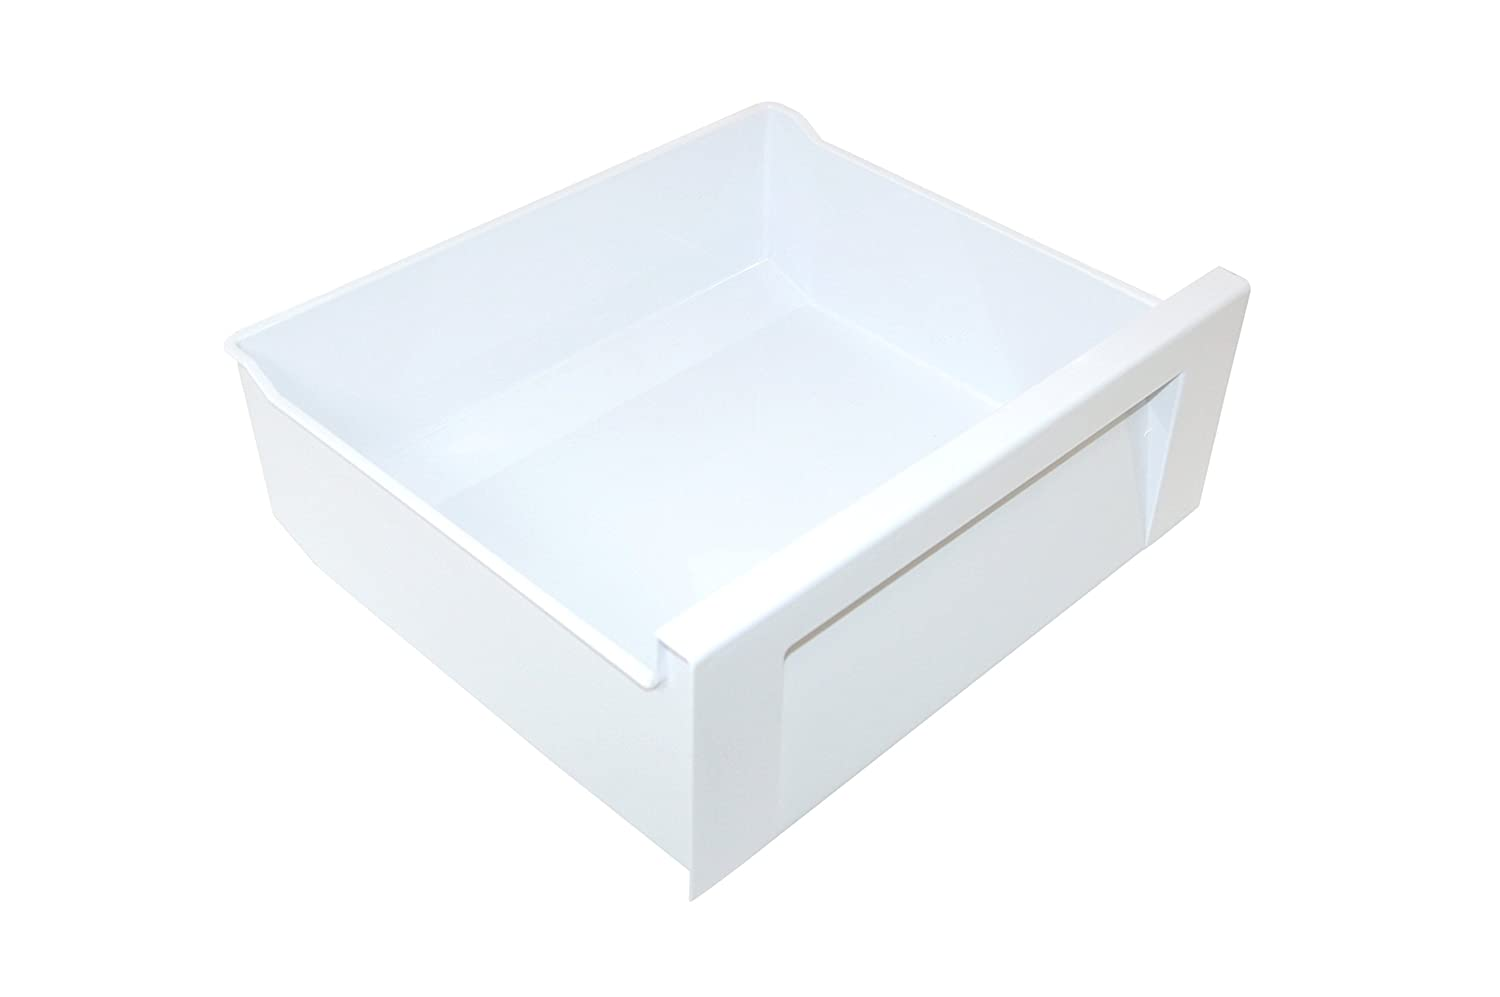 Cda Freezer Upper Freezer Drawer Basket. Genuine part number 481941879767 Cda 481941879767